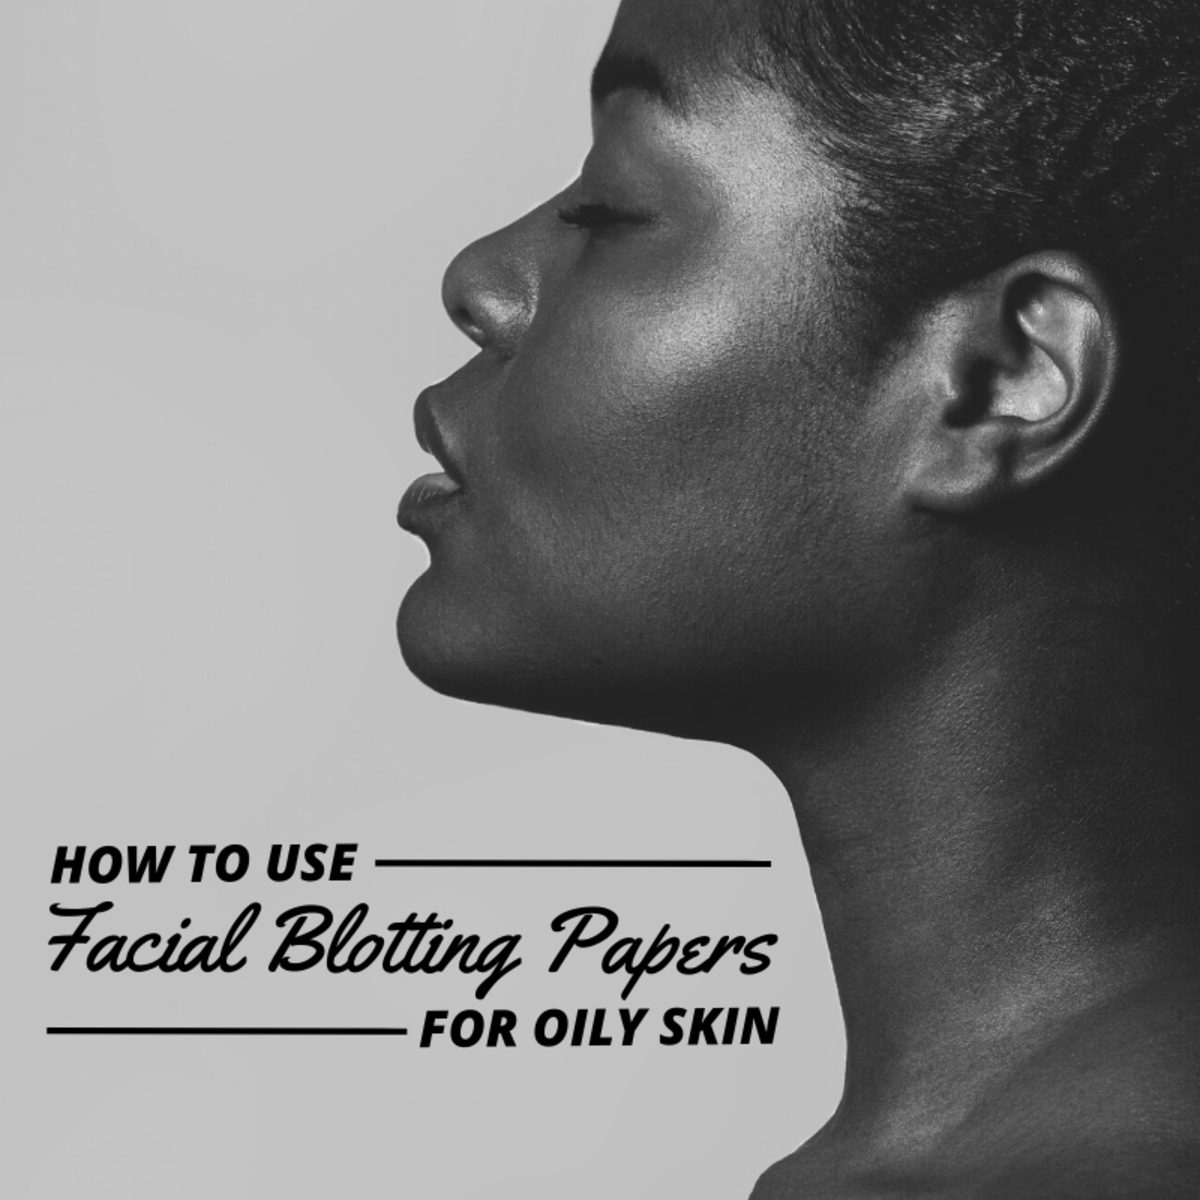 Why You Need Facial Blotting Papers to Absorb Excess Oil From Your Face